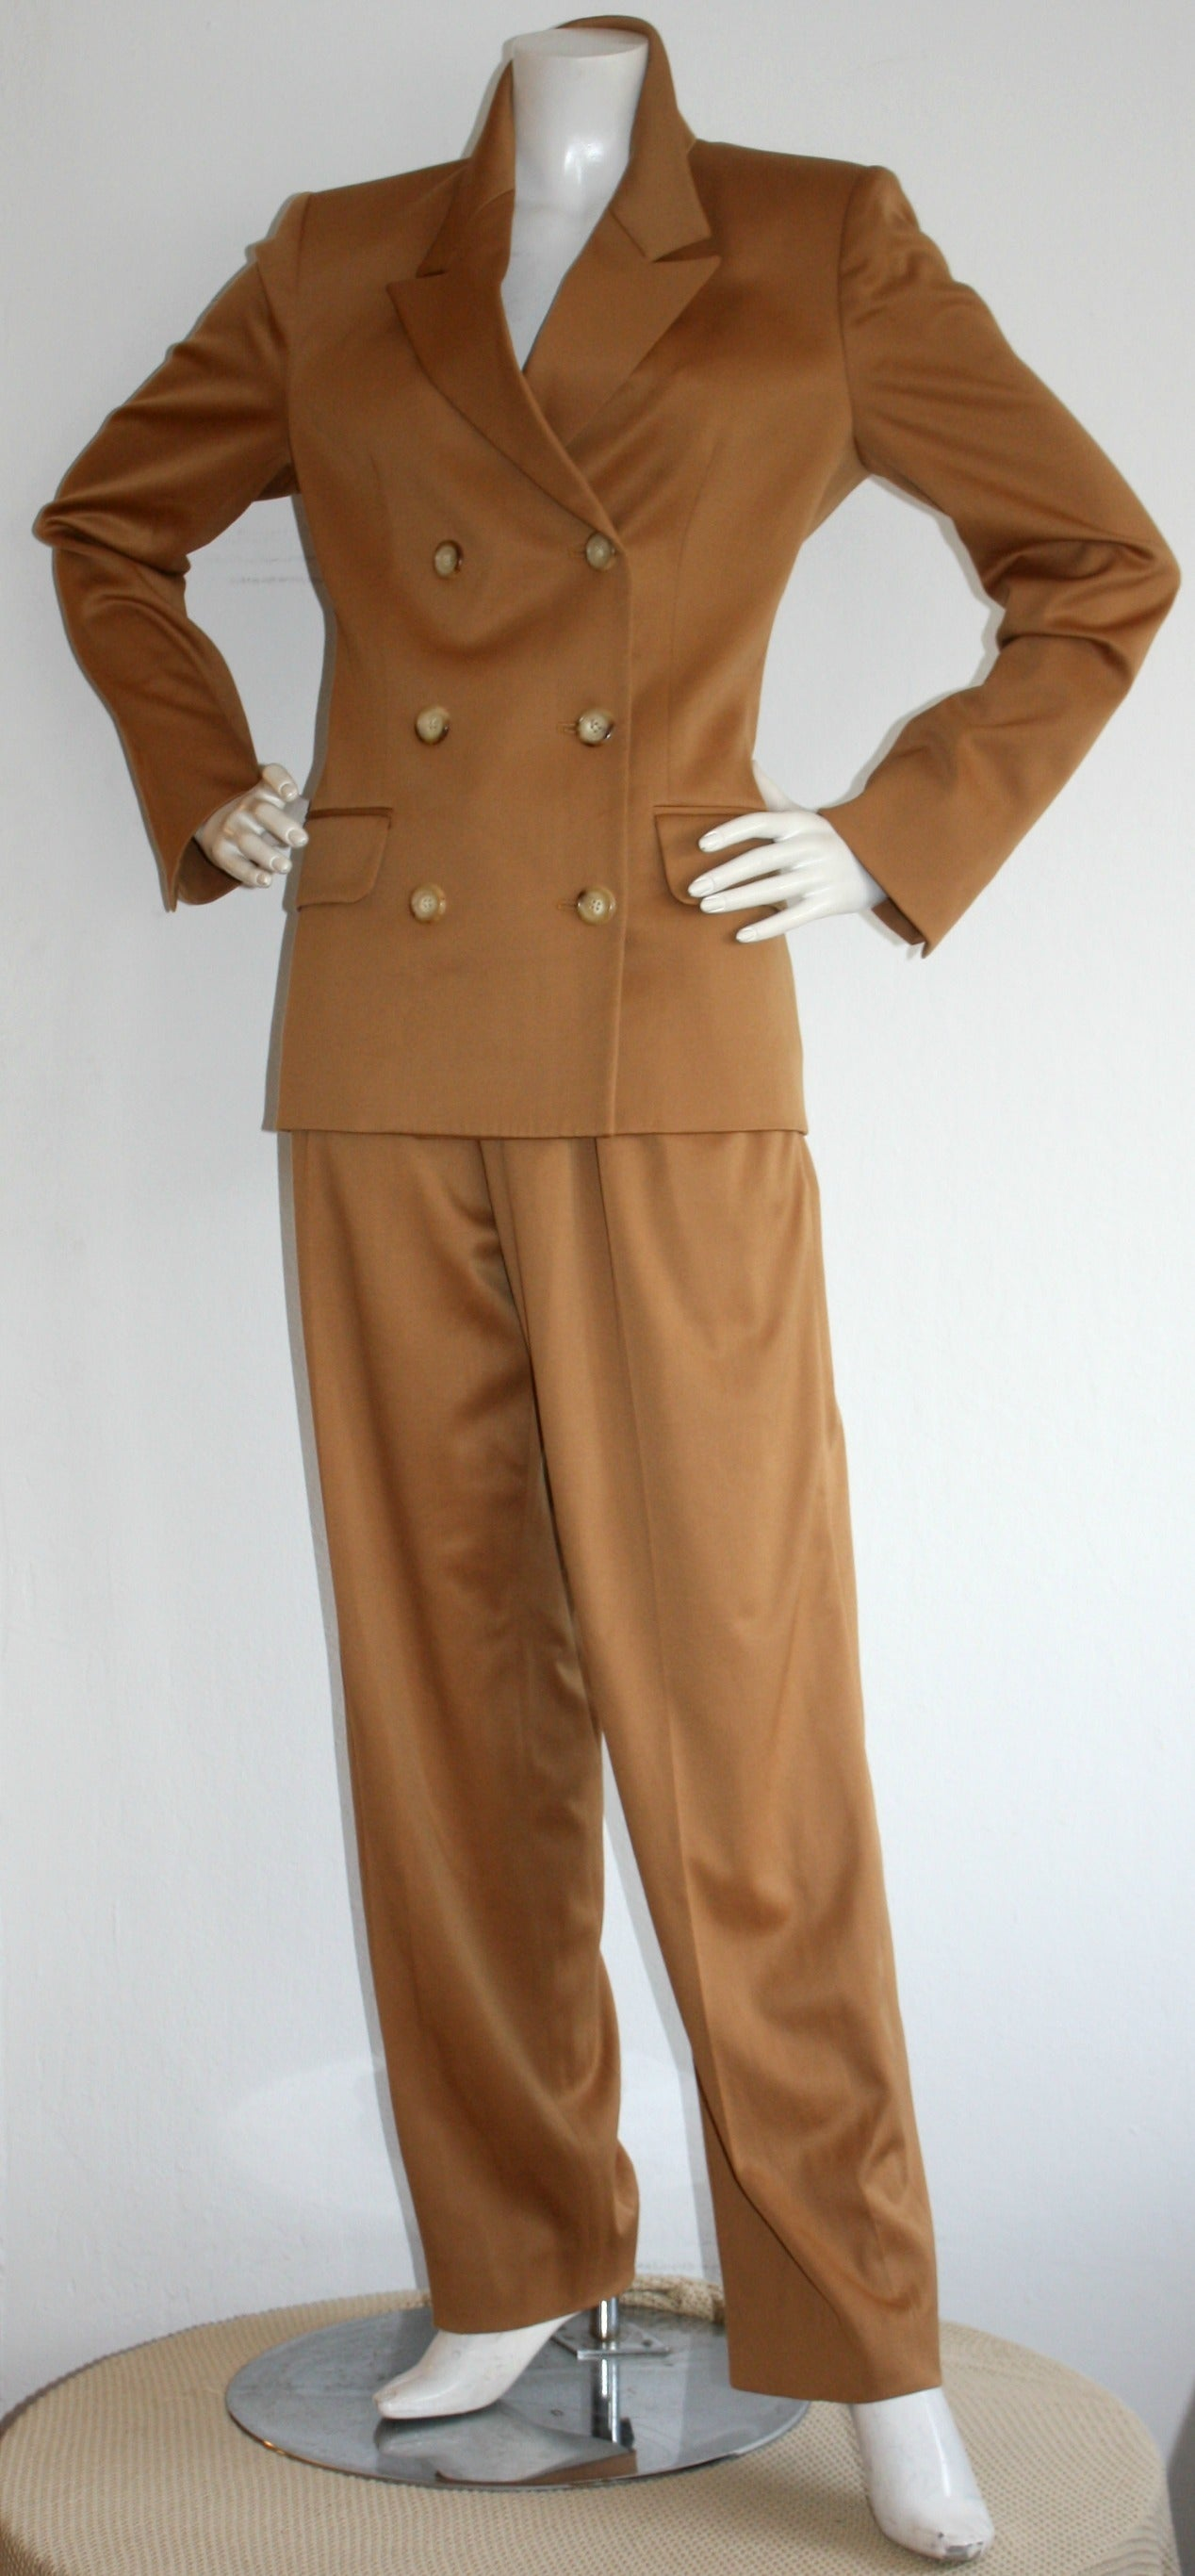 Iconic Vintage Yves Saint Laurent Le Smoking Suit Double Breasted Chic 2